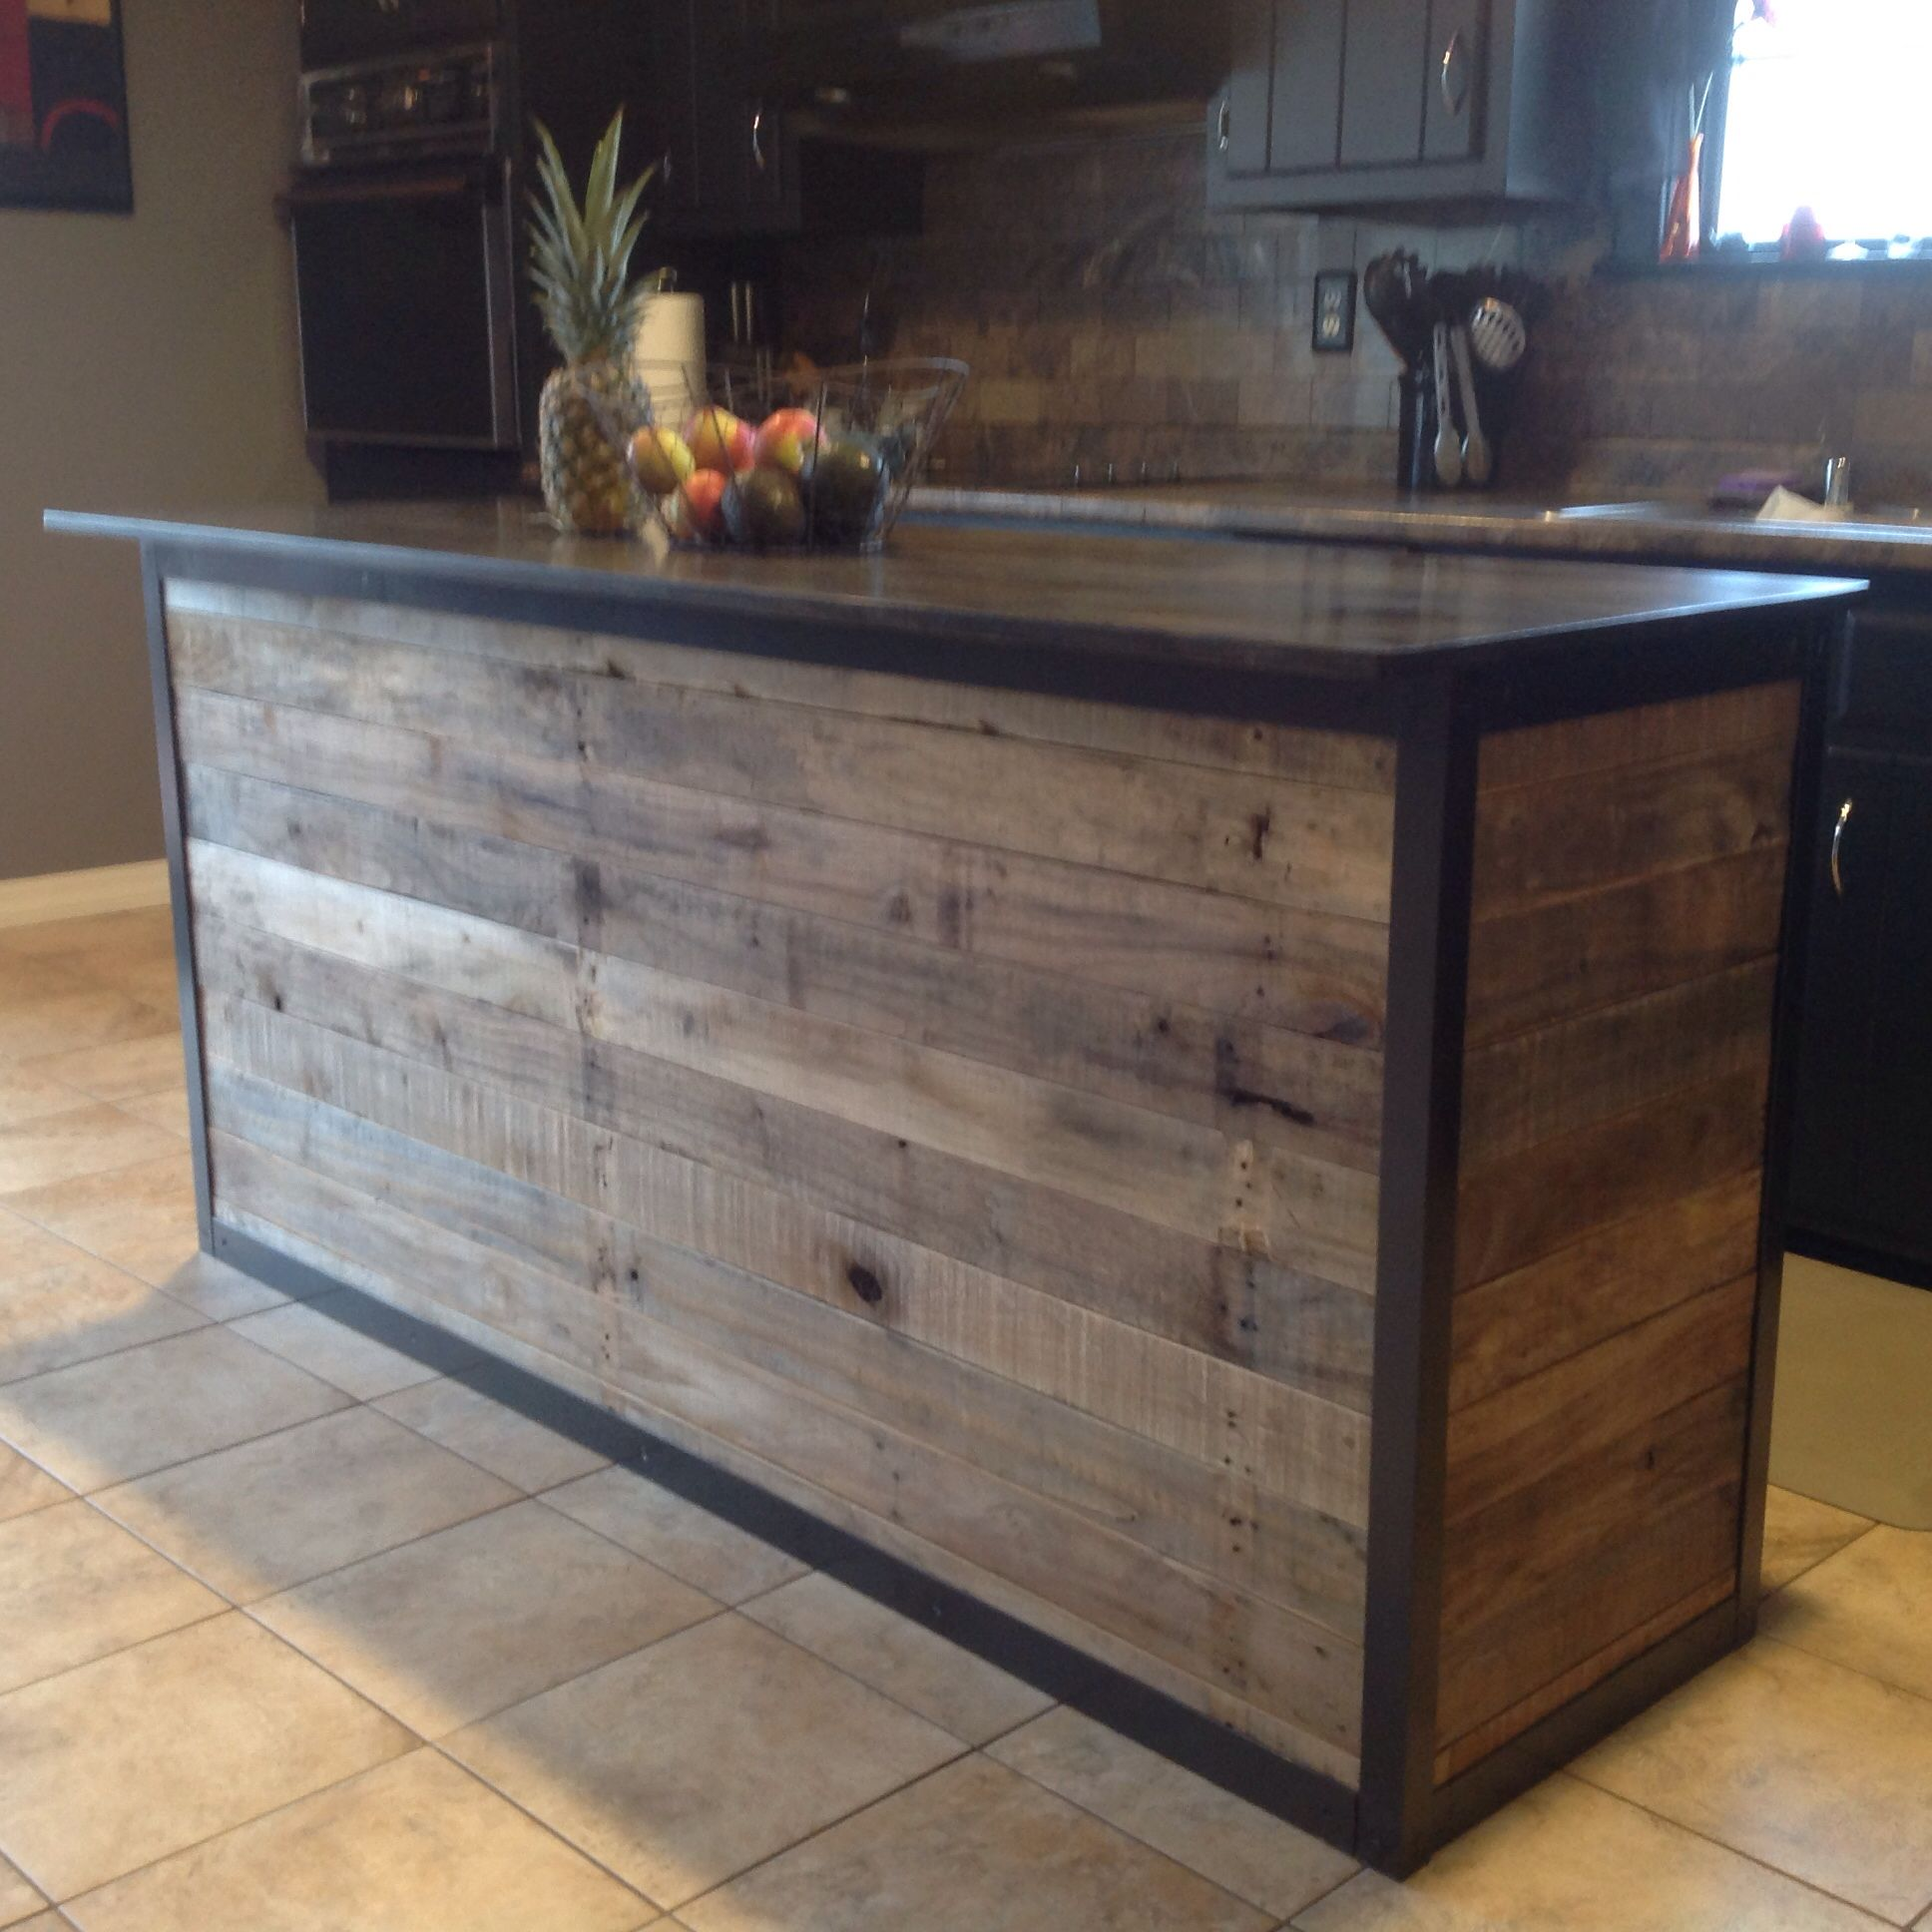 Diy Kitchen Island Bar diy kitchen island made from pallet wood | for my future home